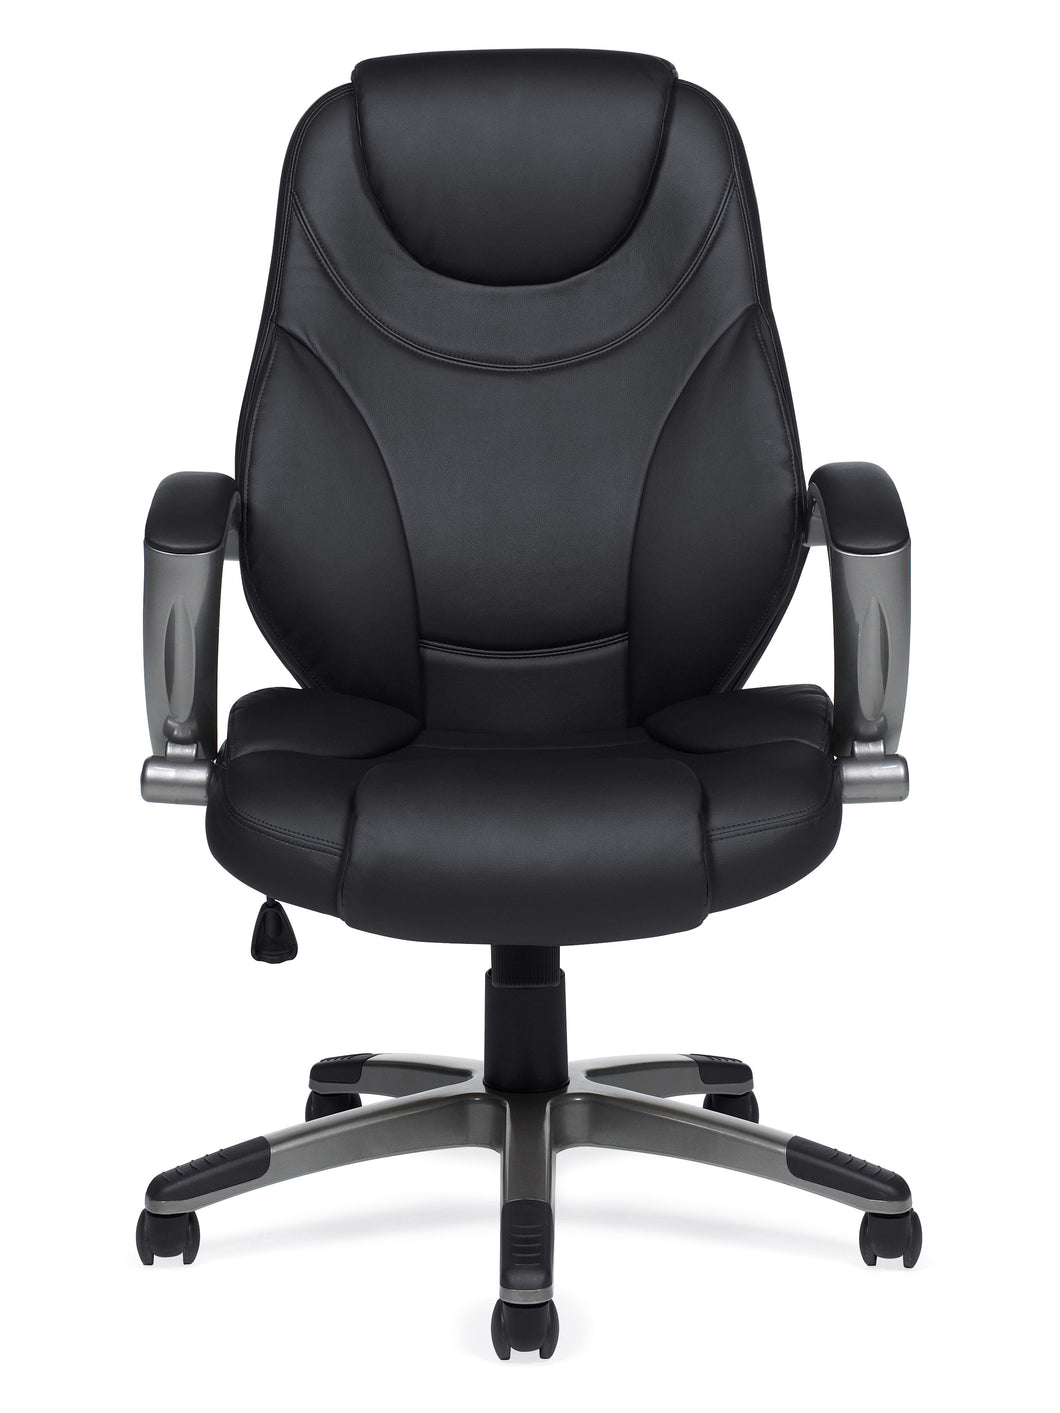 Your Style Luxhide Executive Chair